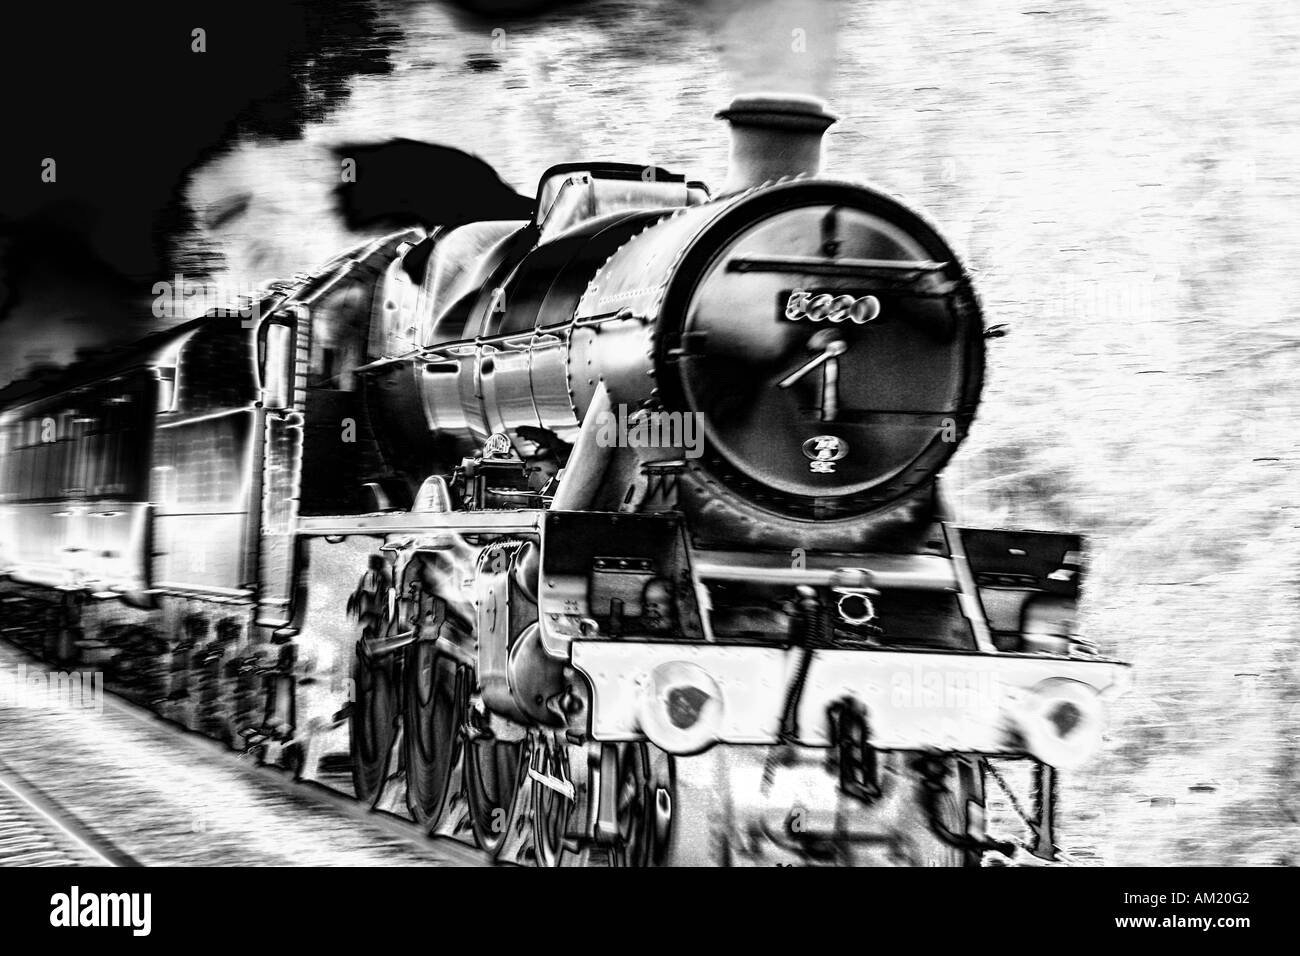 Jubilee Class 5690 ' Leander ' at speed. - Stock Image